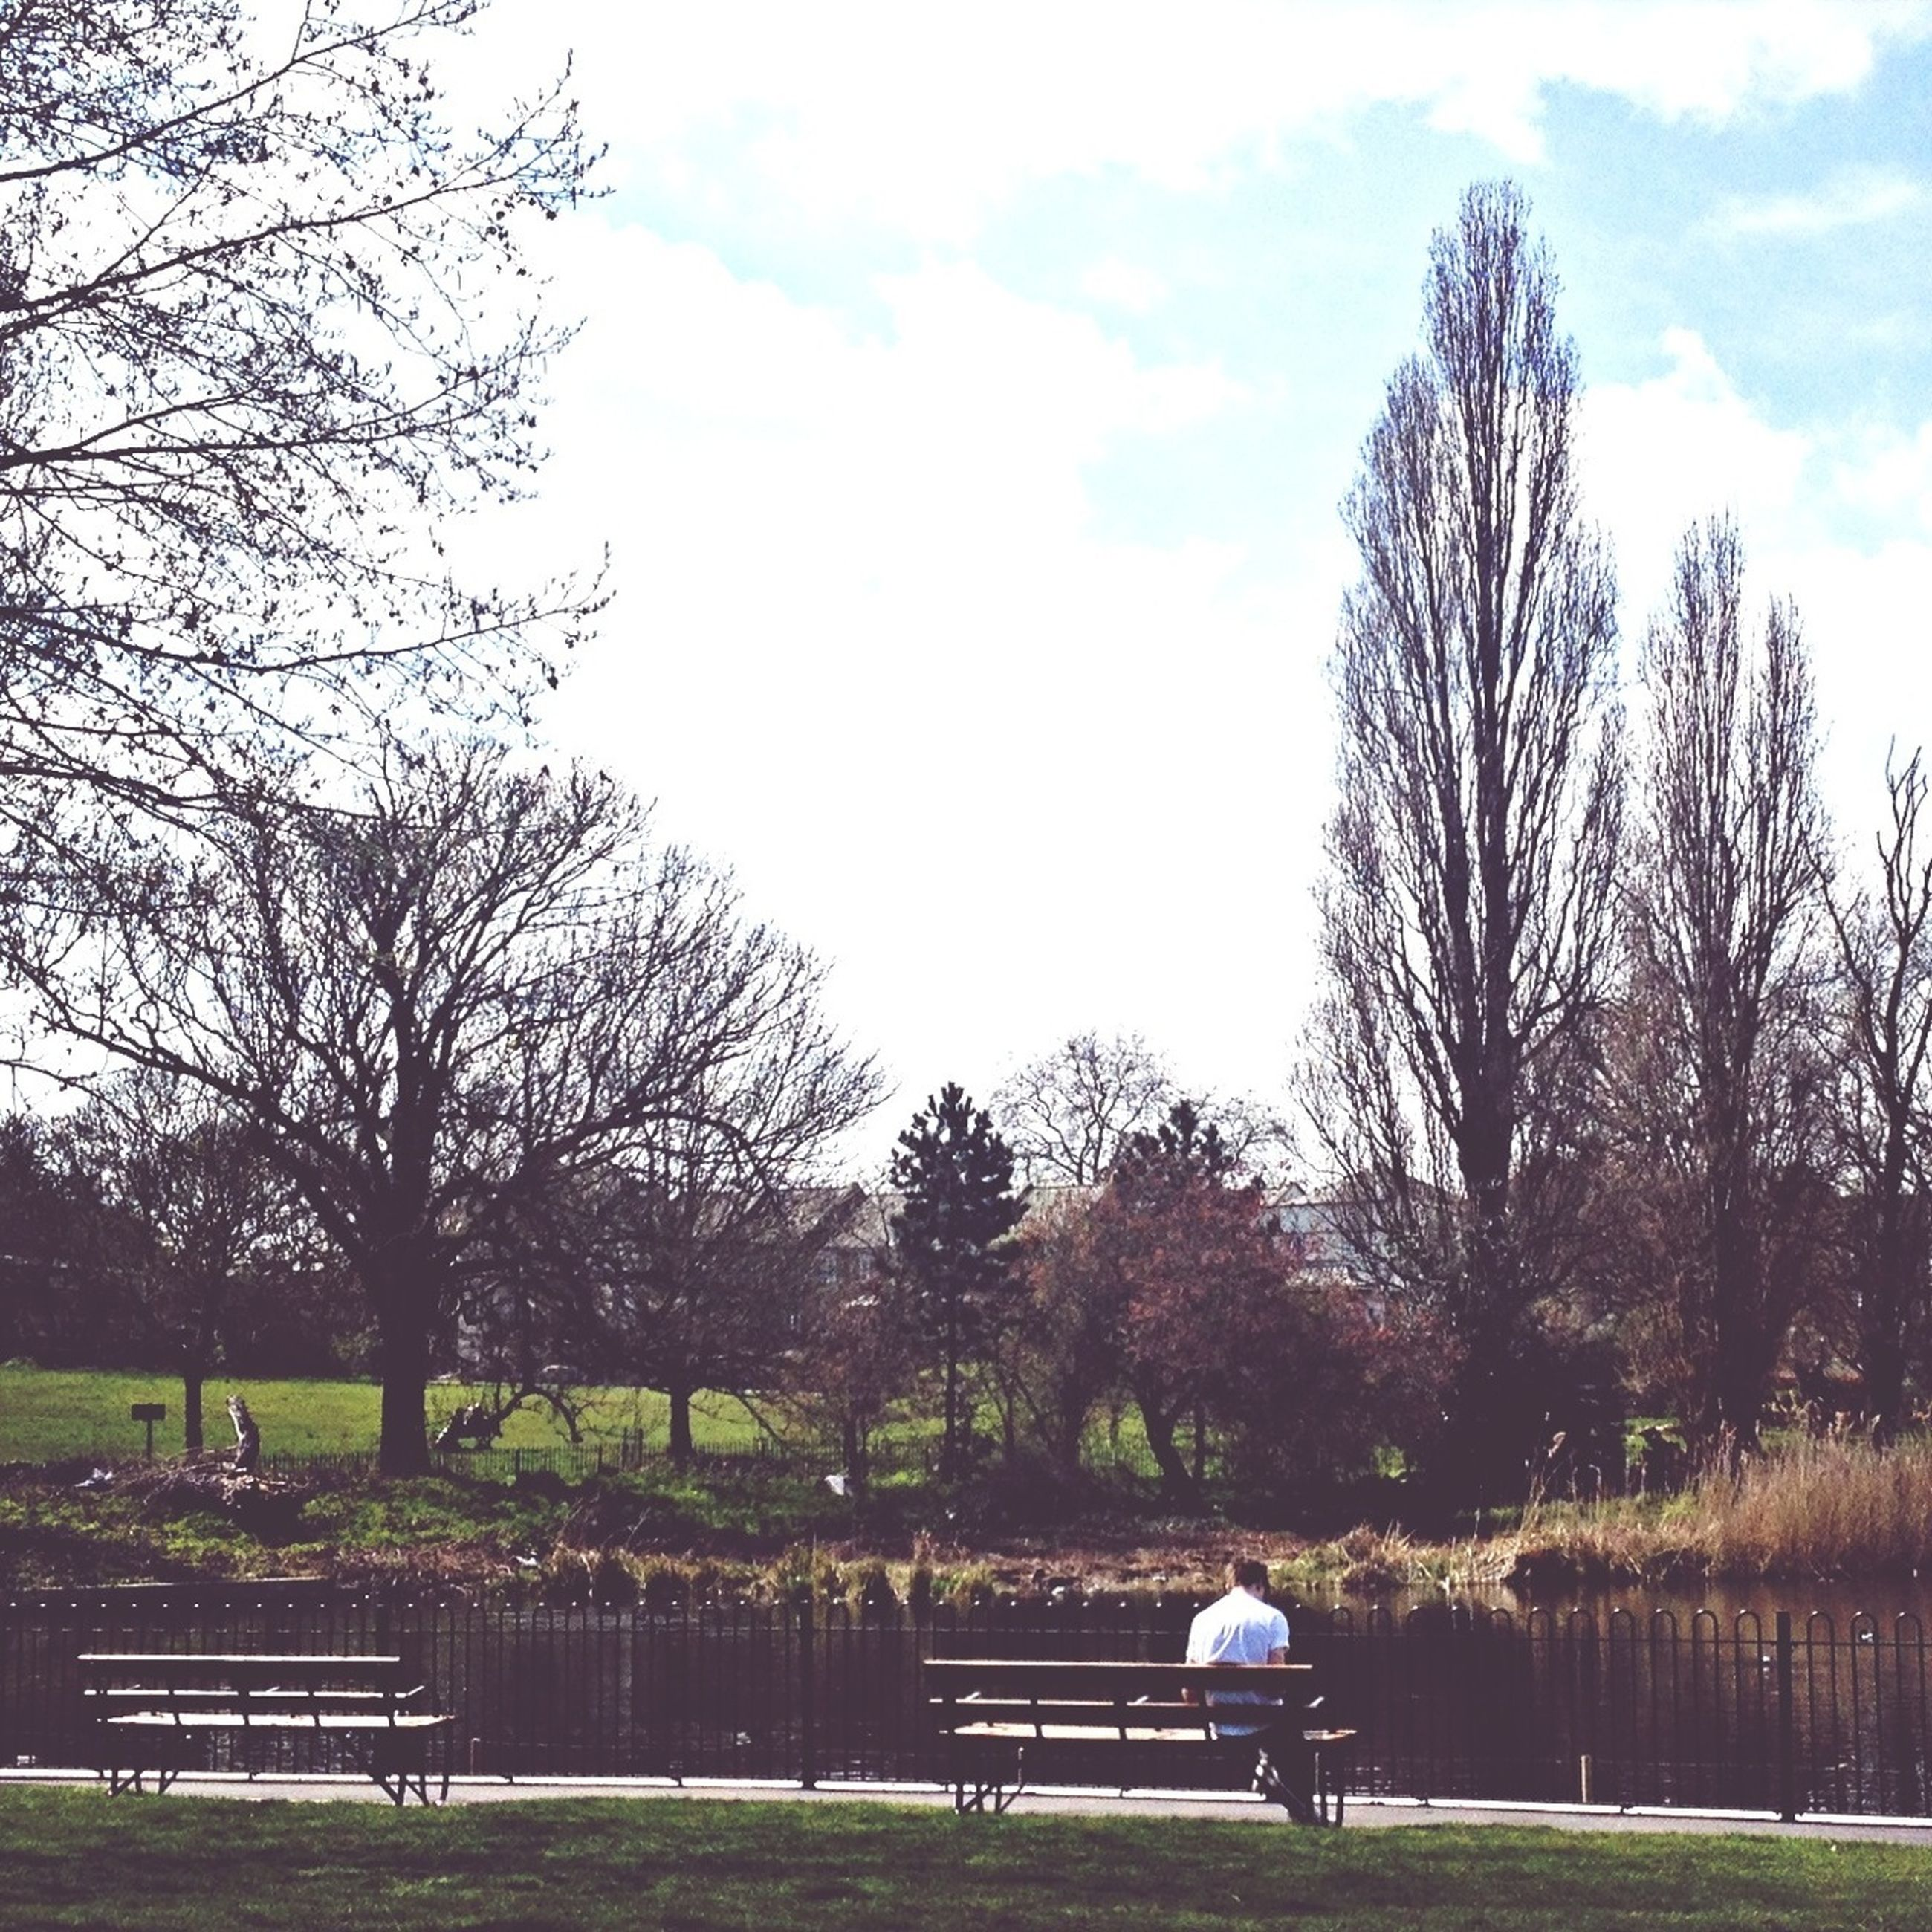 tree, bench, grass, sitting, relaxation, leisure activity, sky, lifestyles, lake, men, water, tranquility, park bench, park - man made space, tranquil scene, bare tree, nature, person